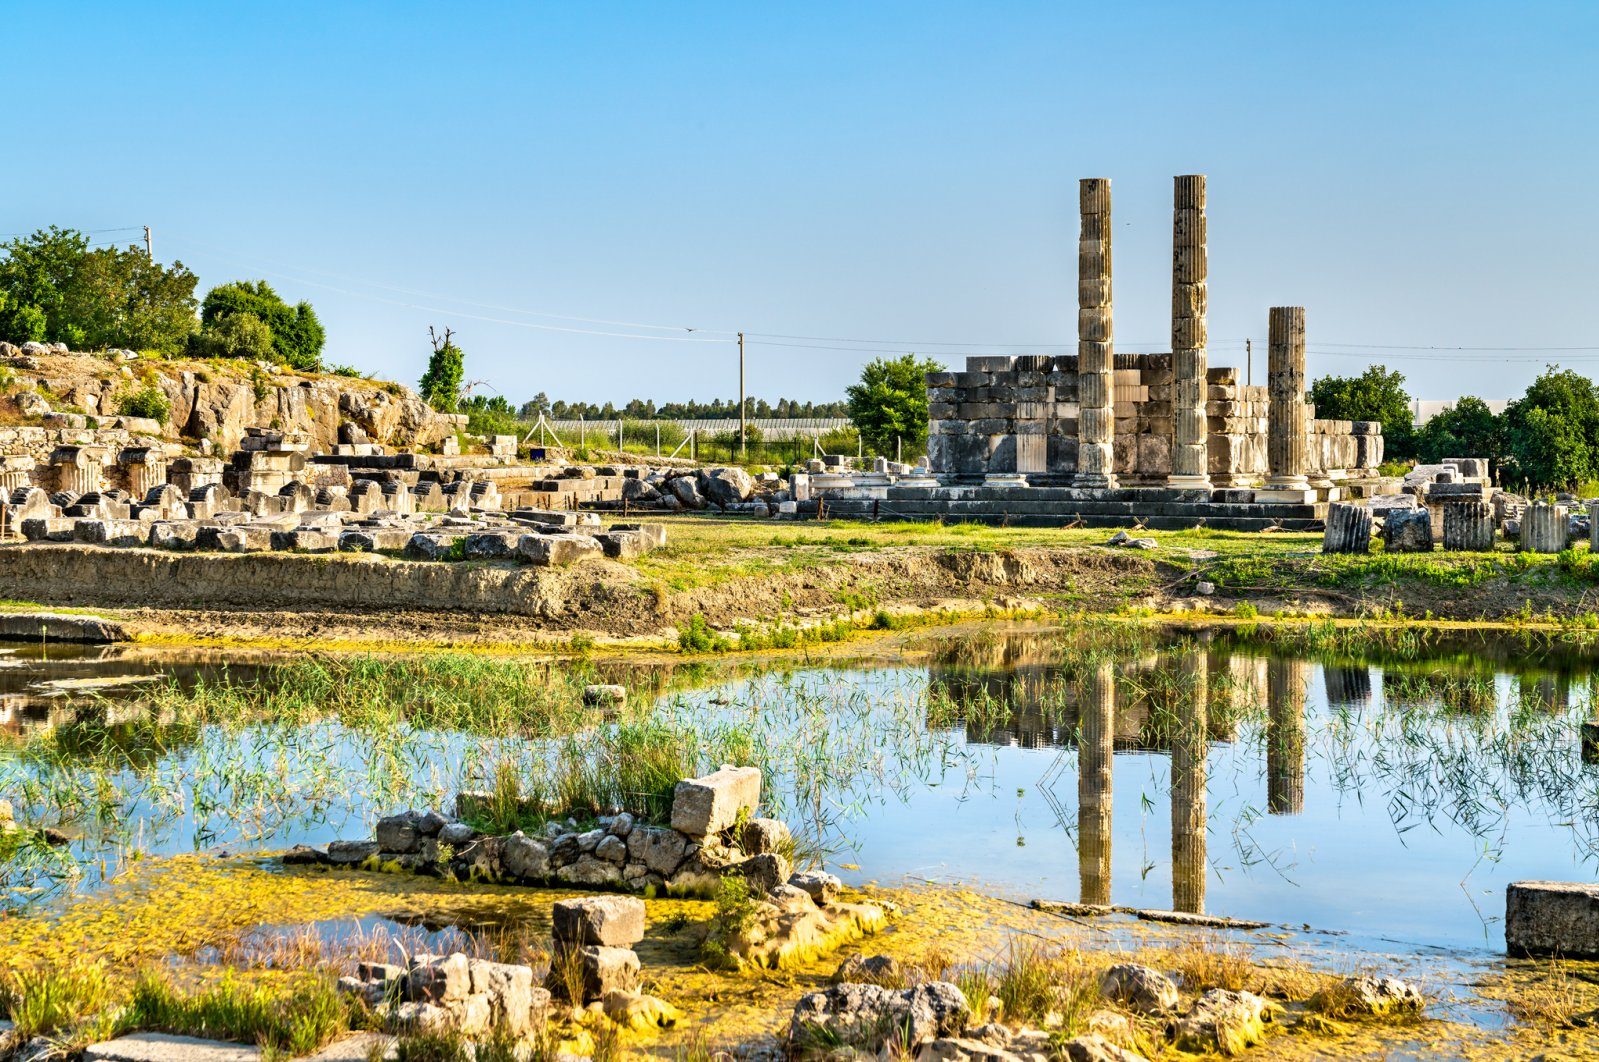 The water in and around the ruins of Letoon create picture-perfect sights. (iStock Photo)